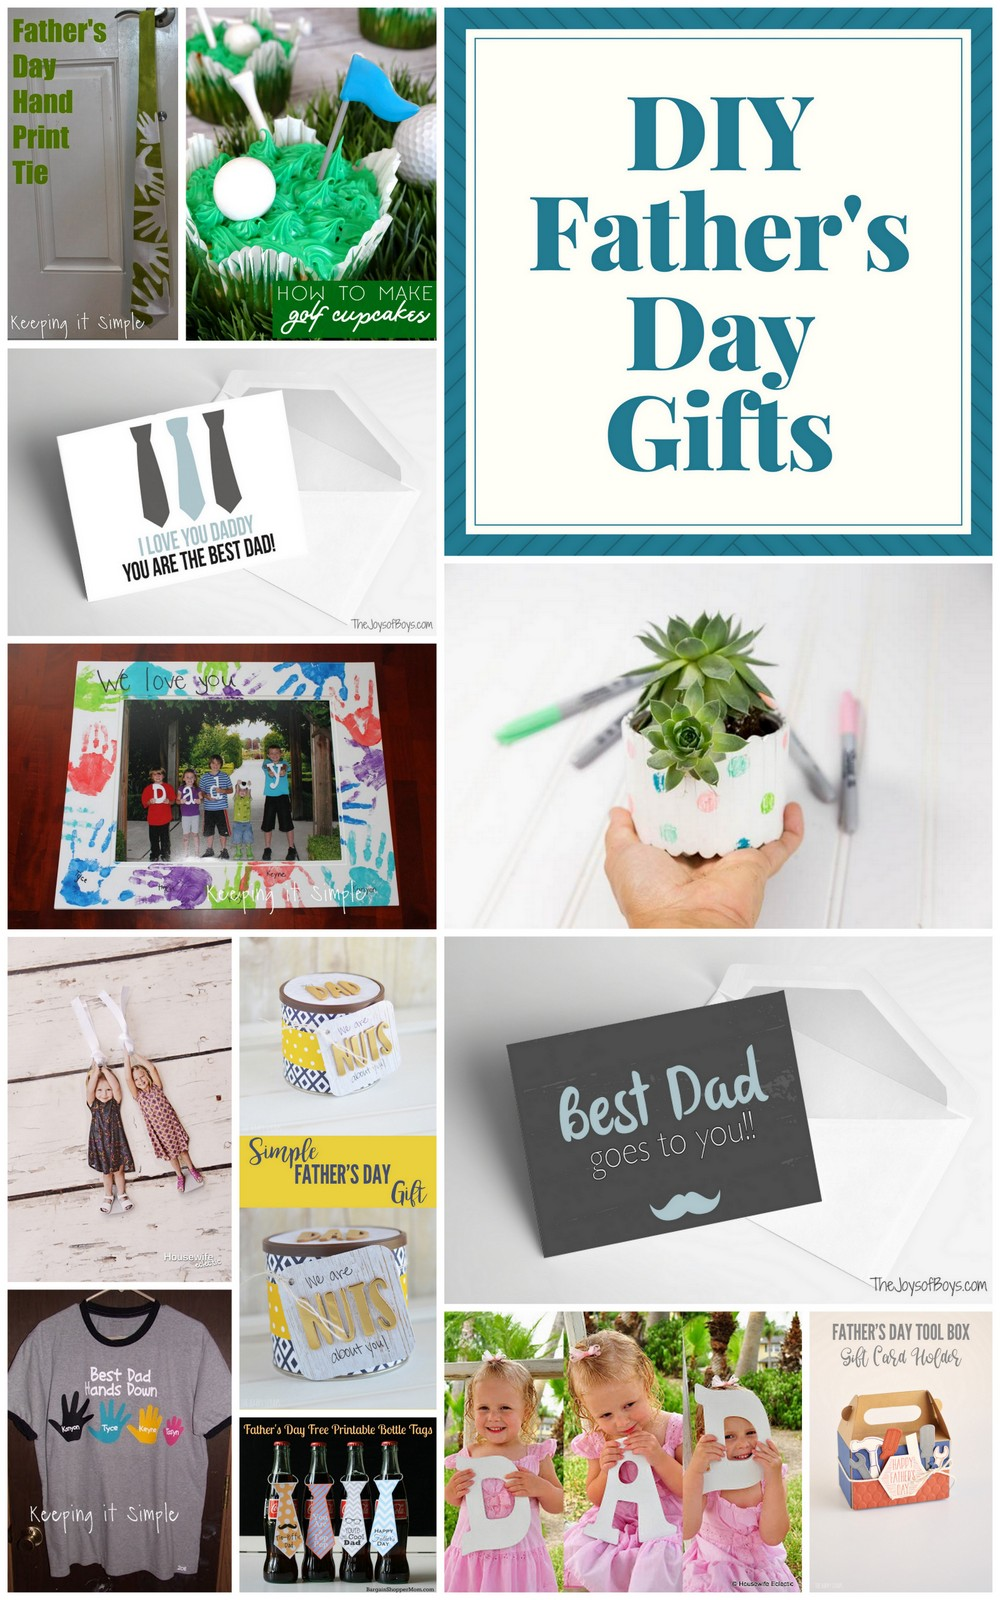 Celebrate father's day with these great DIY gift ideas